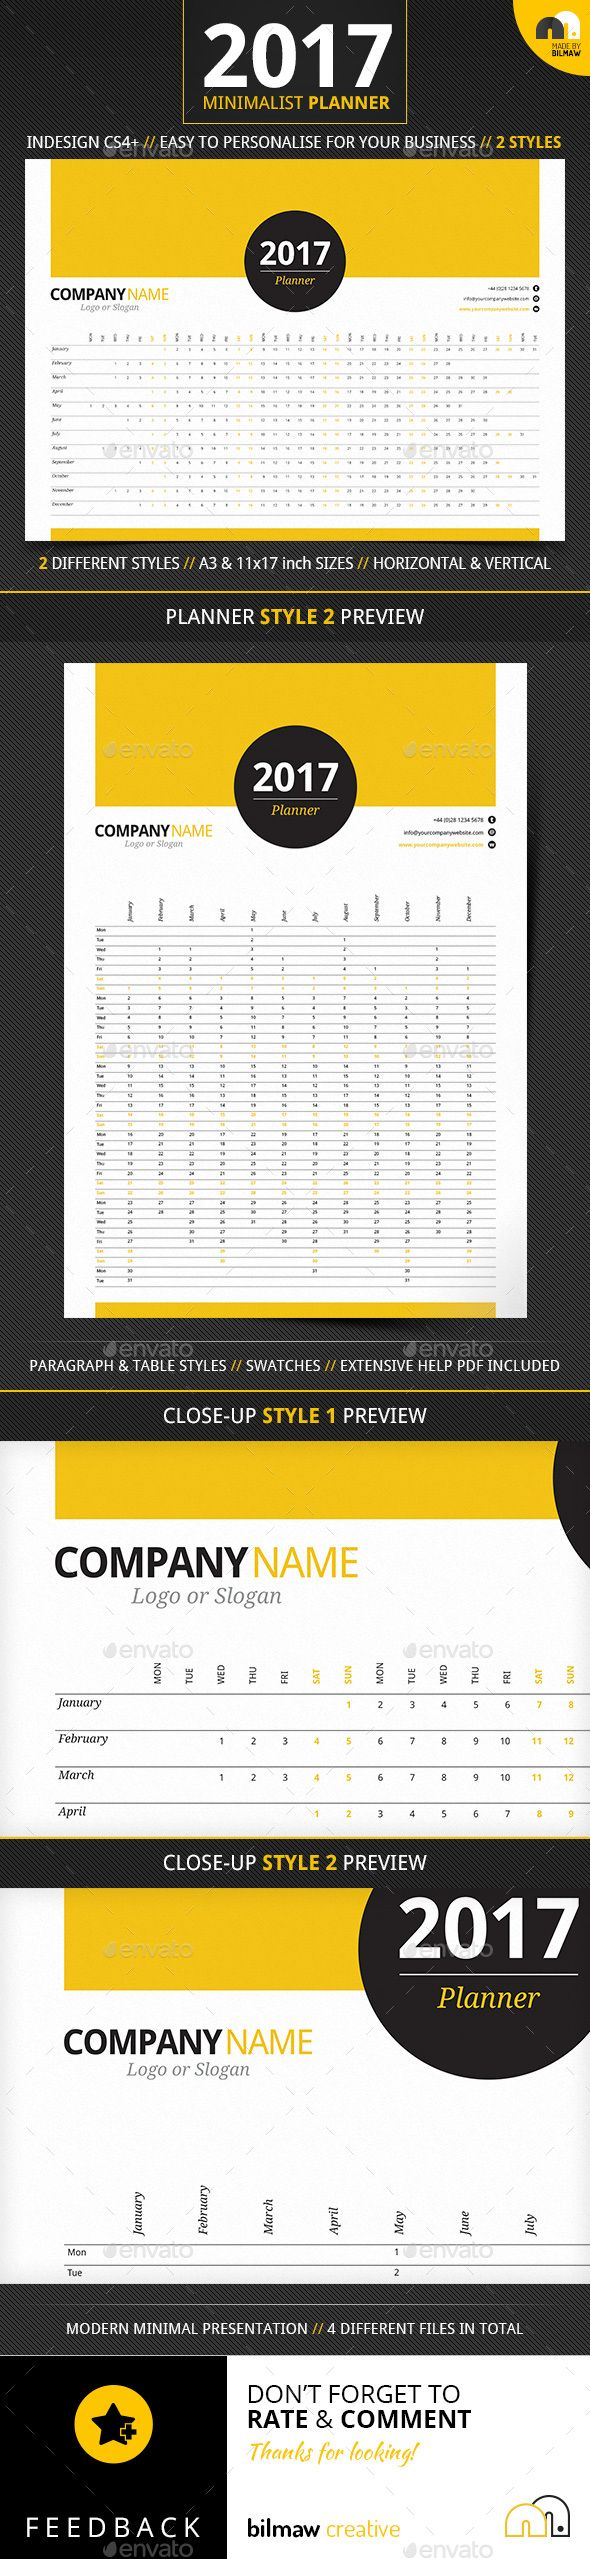 Minimalist Year Planner | Printable Template | Office interior design | MINIMALIST YEAR PLANNER. 2 Styles // A3 & 11×17 inch (Tabloid) Versions